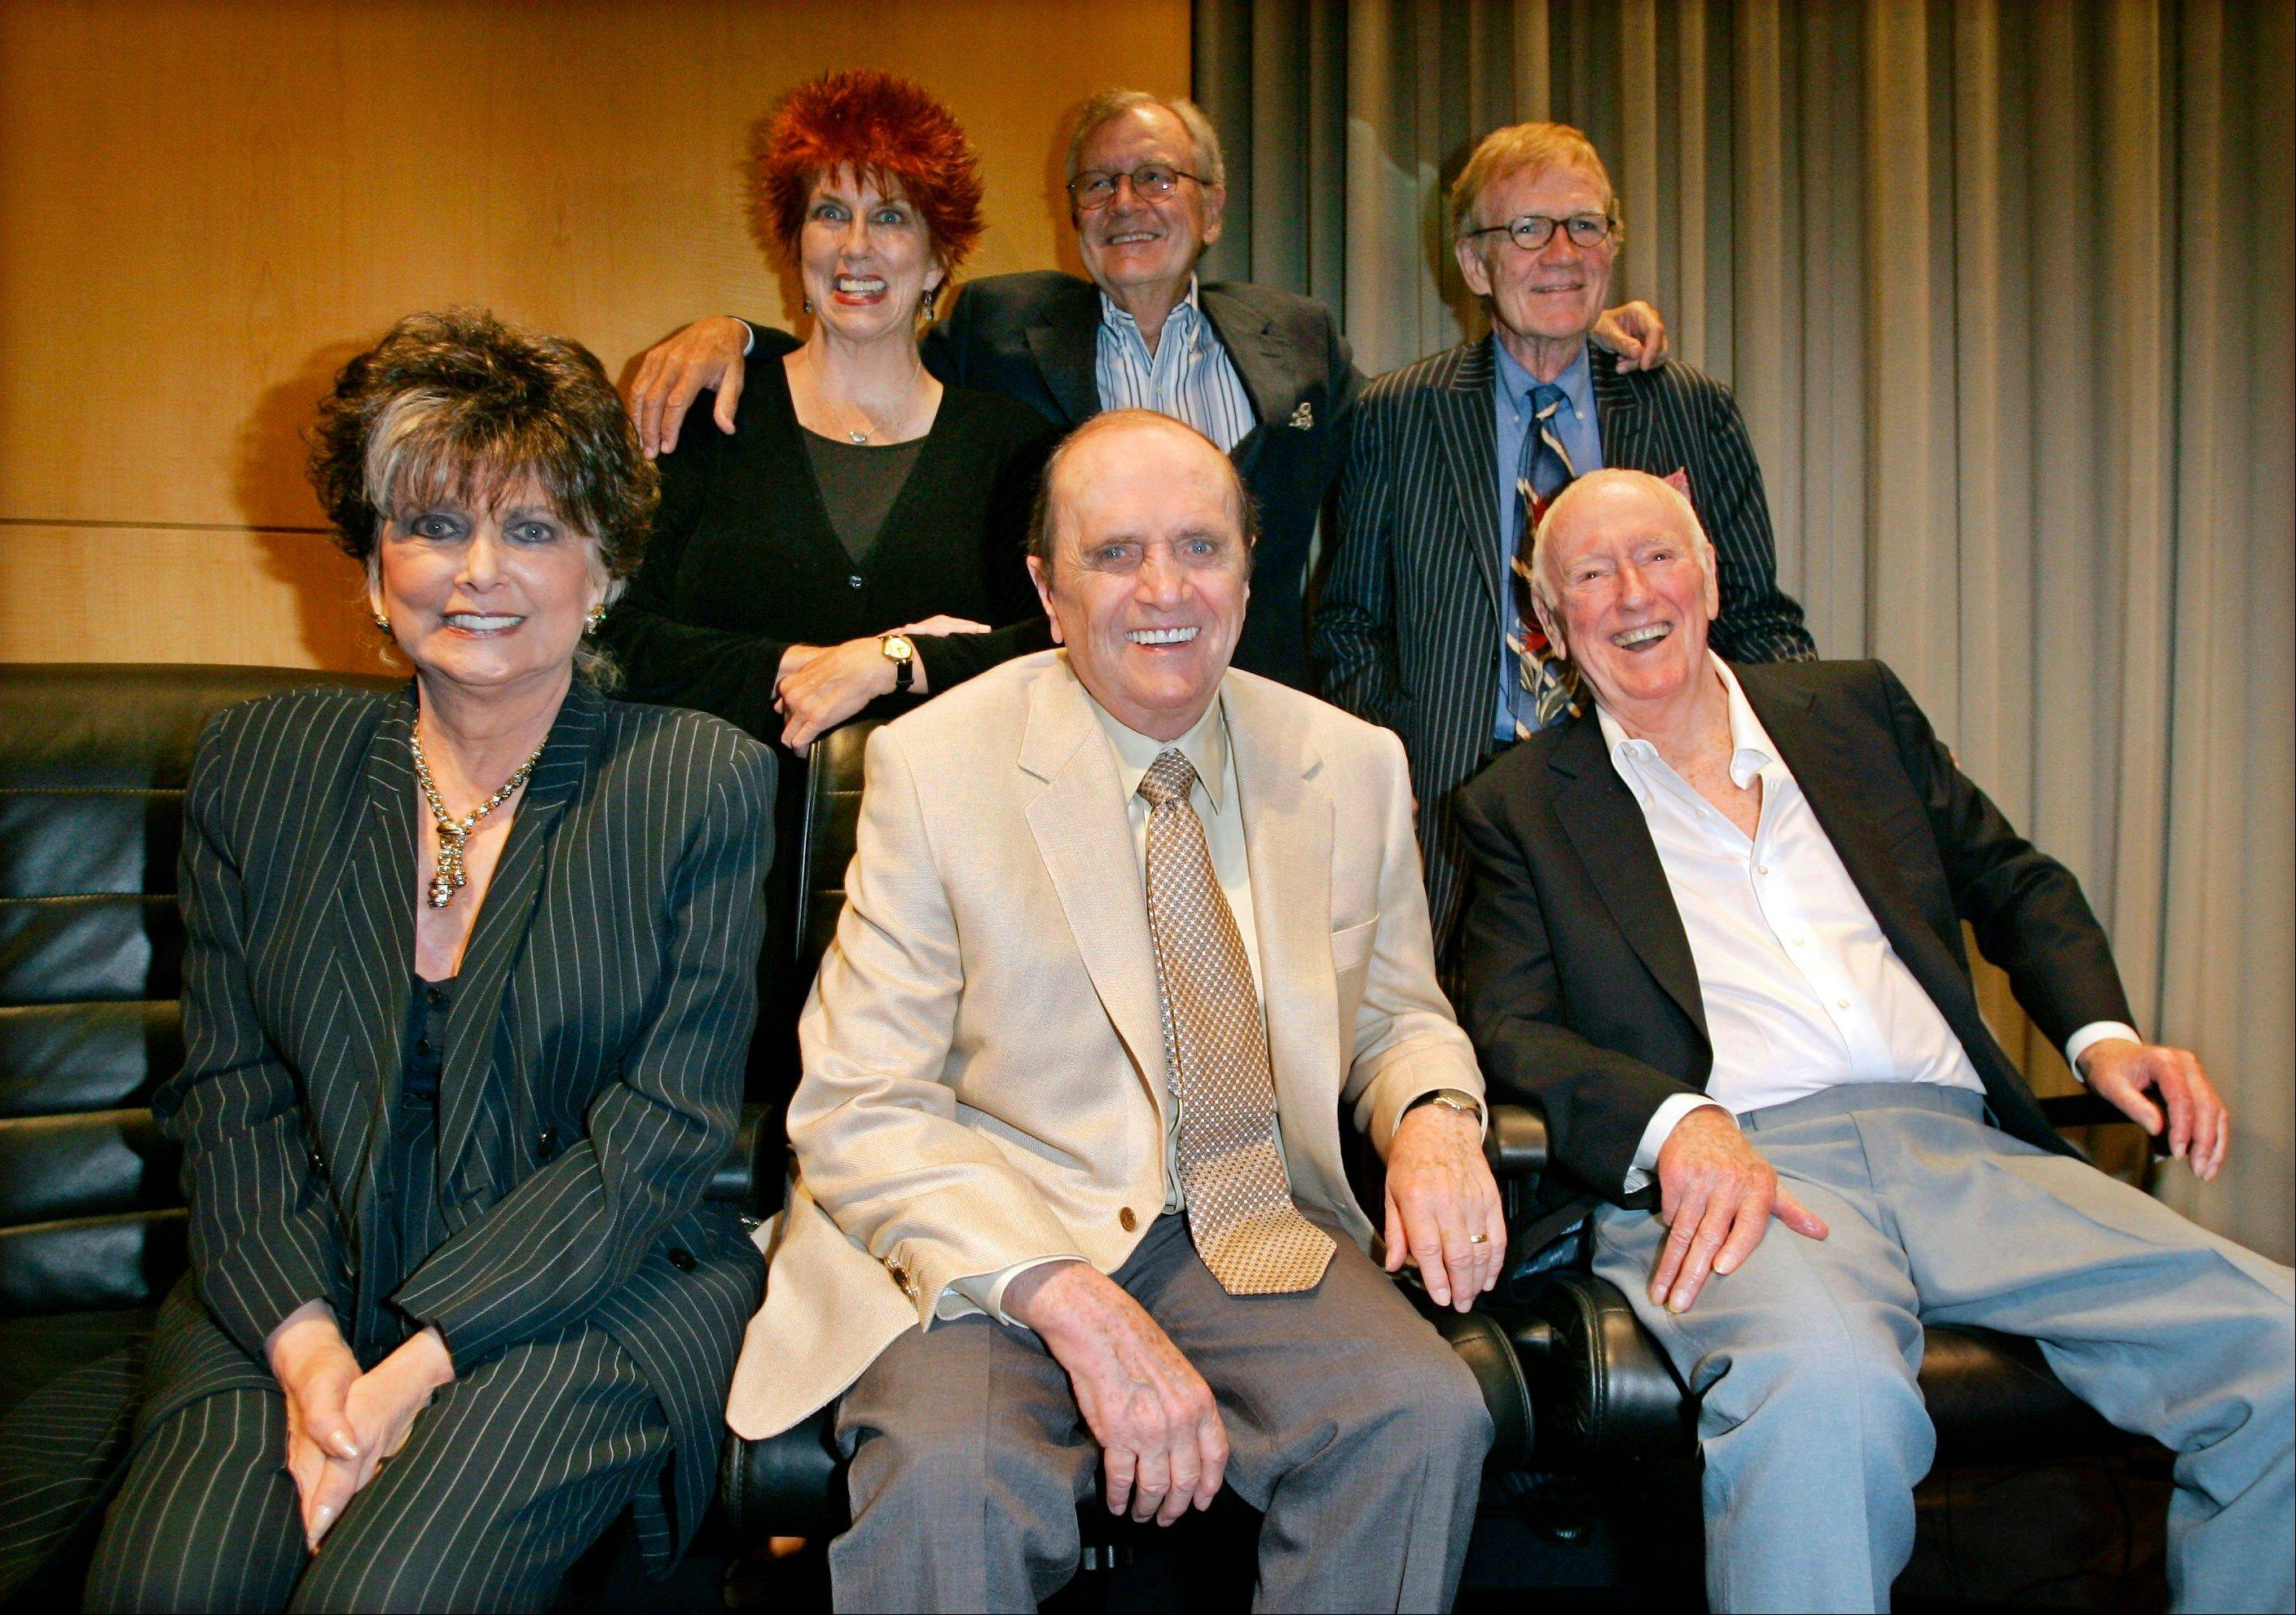 "Associated Press/2007 Bob Newhart, center, sits with other members of the cast and crew of the ""The Bob Newhart Show,"" from top left, Marcia Wallace, Bill Daily, Jack Riley, and, from bottom lelt, Suzanne Pleshette and Dick Martin during TV Land's 35th anniversary tribute to the program in Beverly Hills, Calif. Wallace, who played a receptionist on the show, and the voice of Edna Krabappel on ""The Simpsons,"" died Saturday."